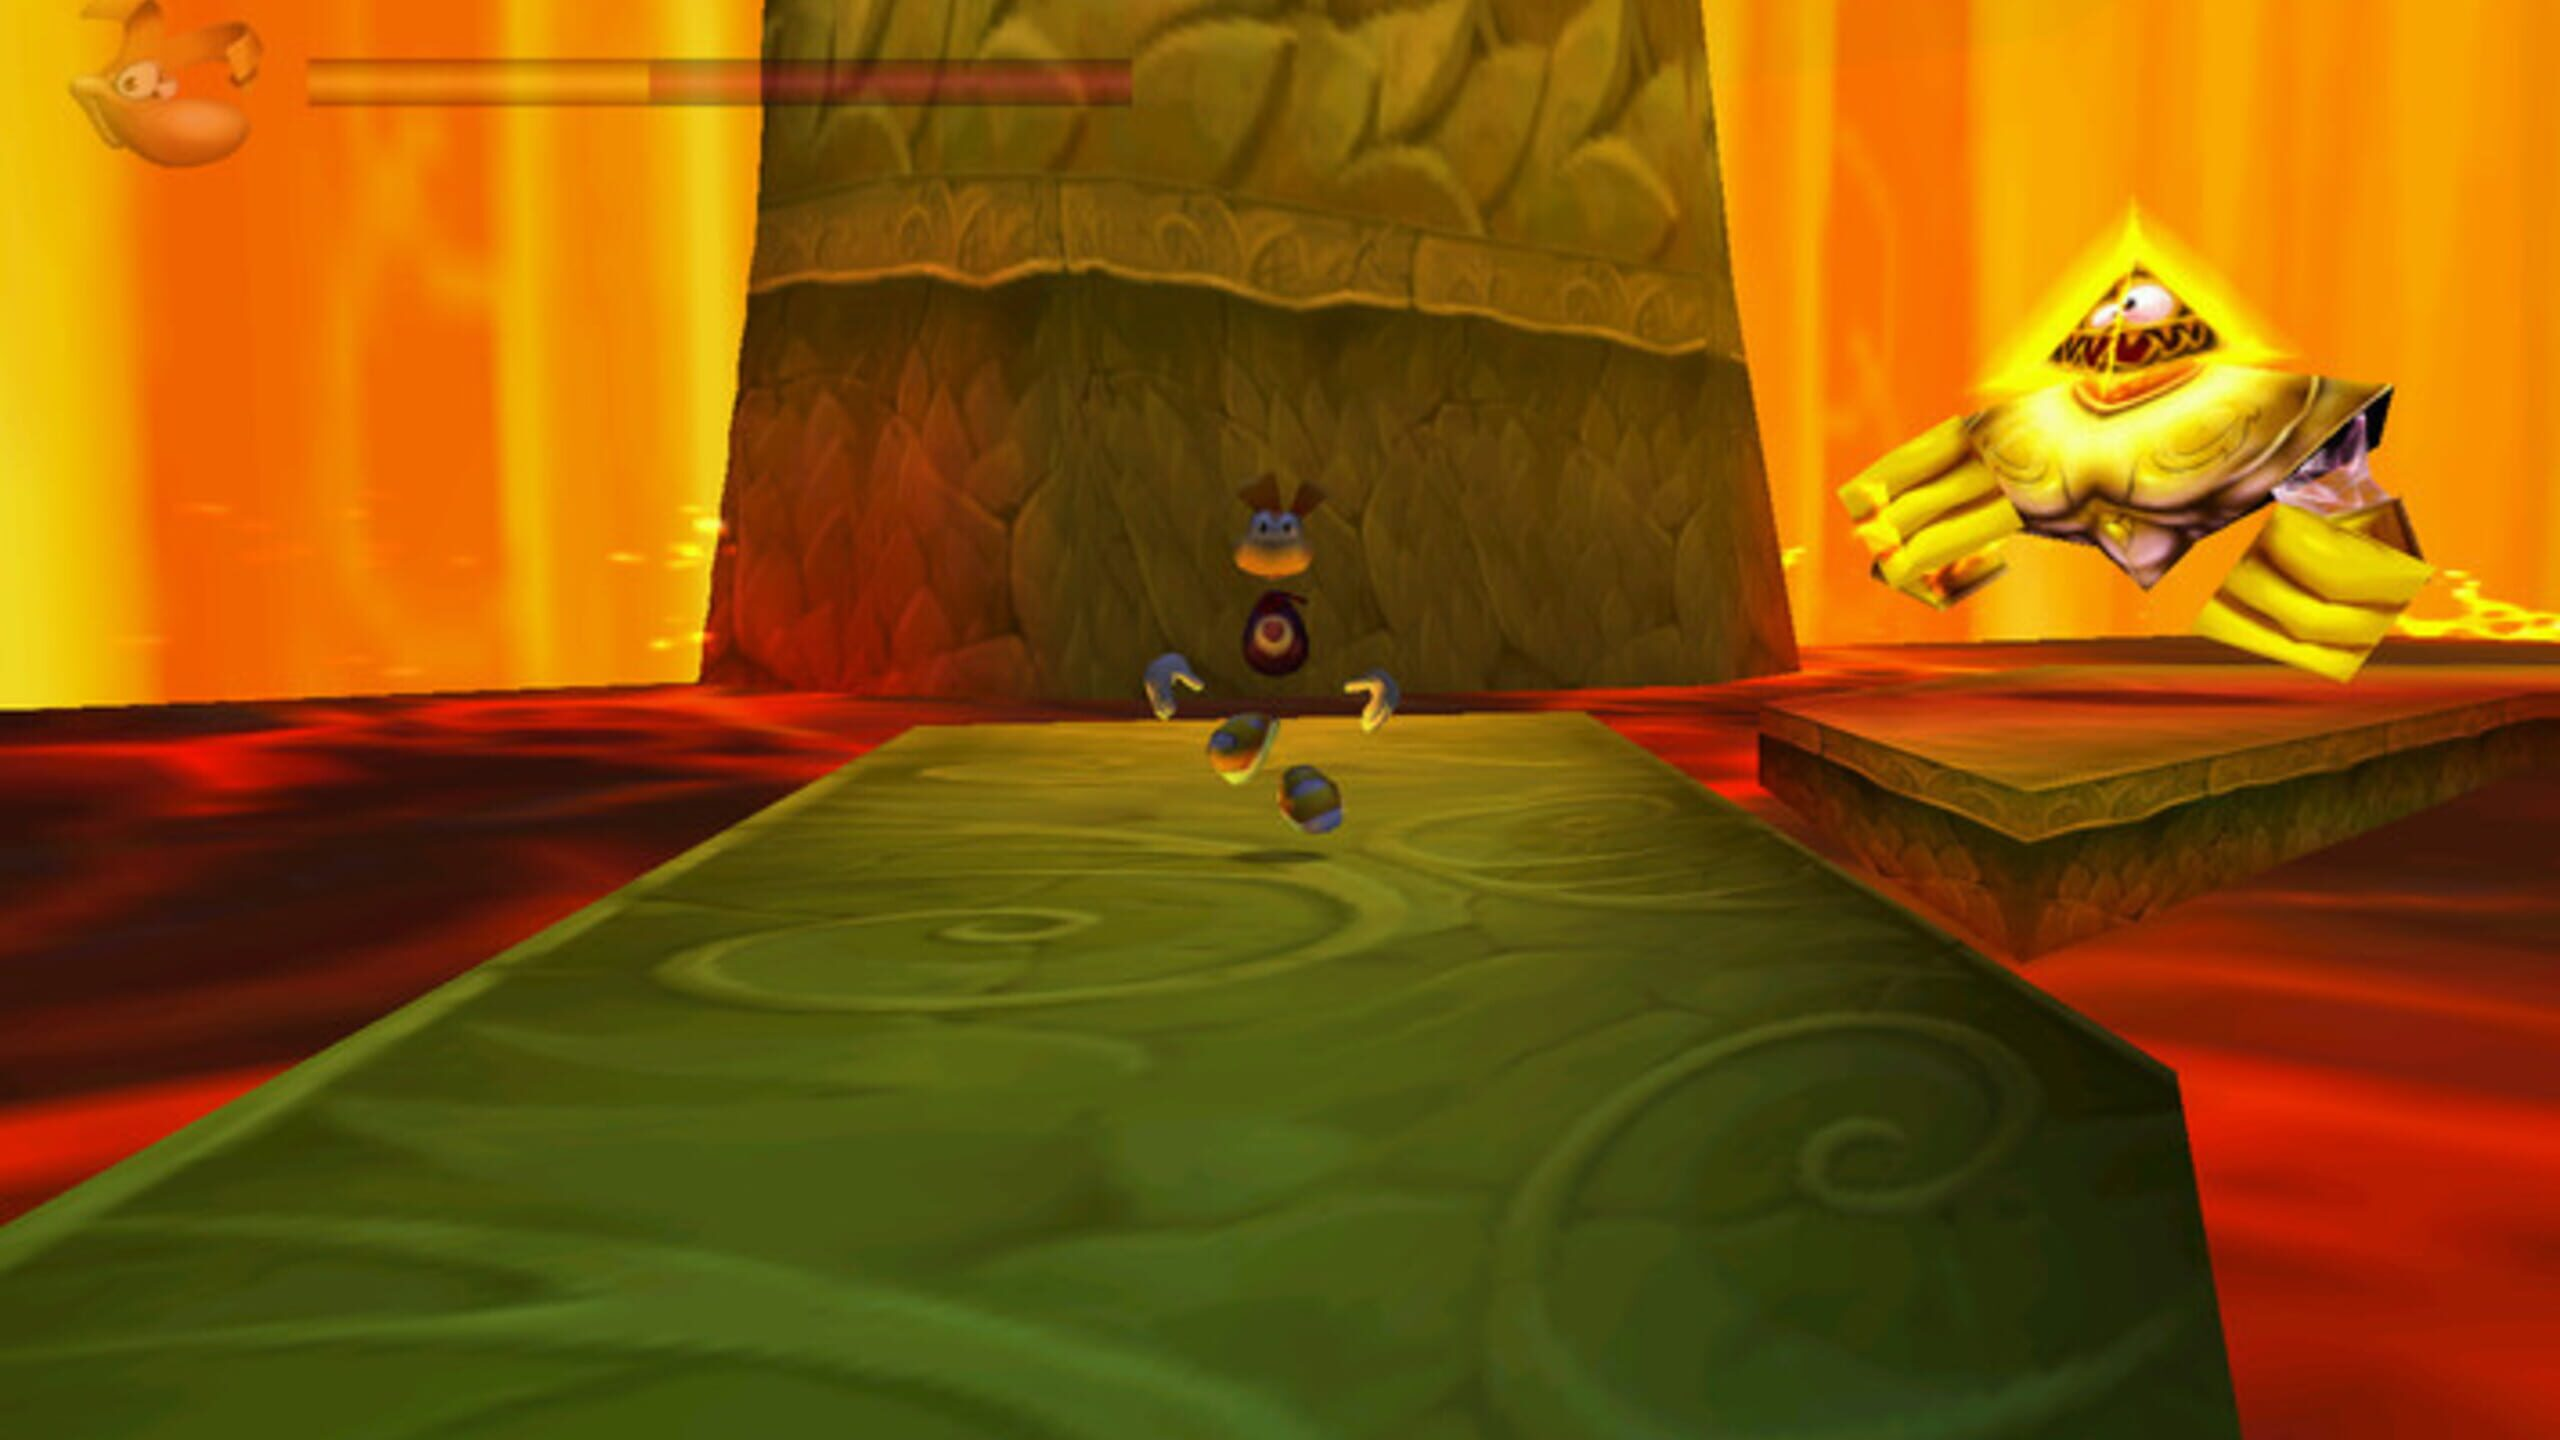 Rayman 2 - The Great Escape - screenshots-1